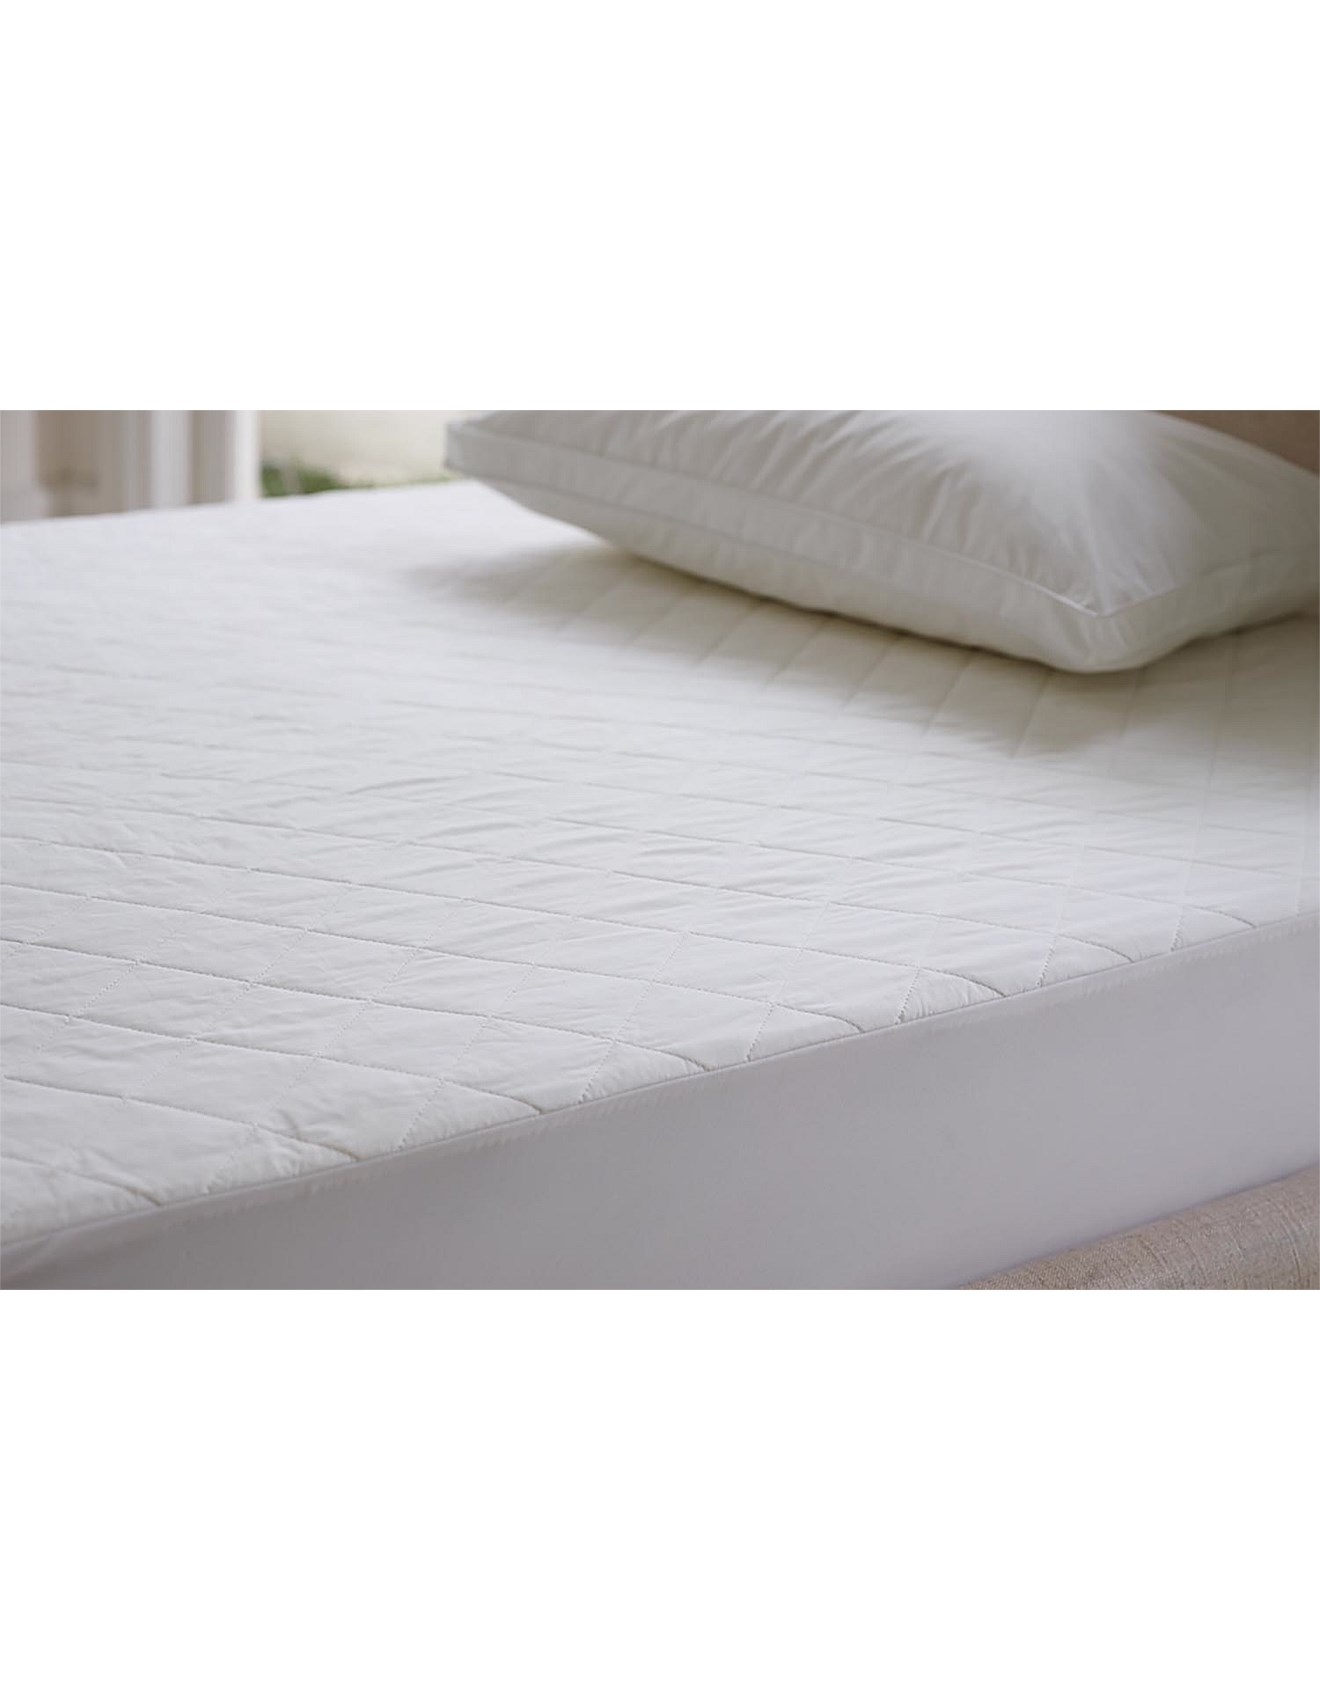 King Single Mattress Protector Sheridan Buy Sheridan Sheets Towels And More David